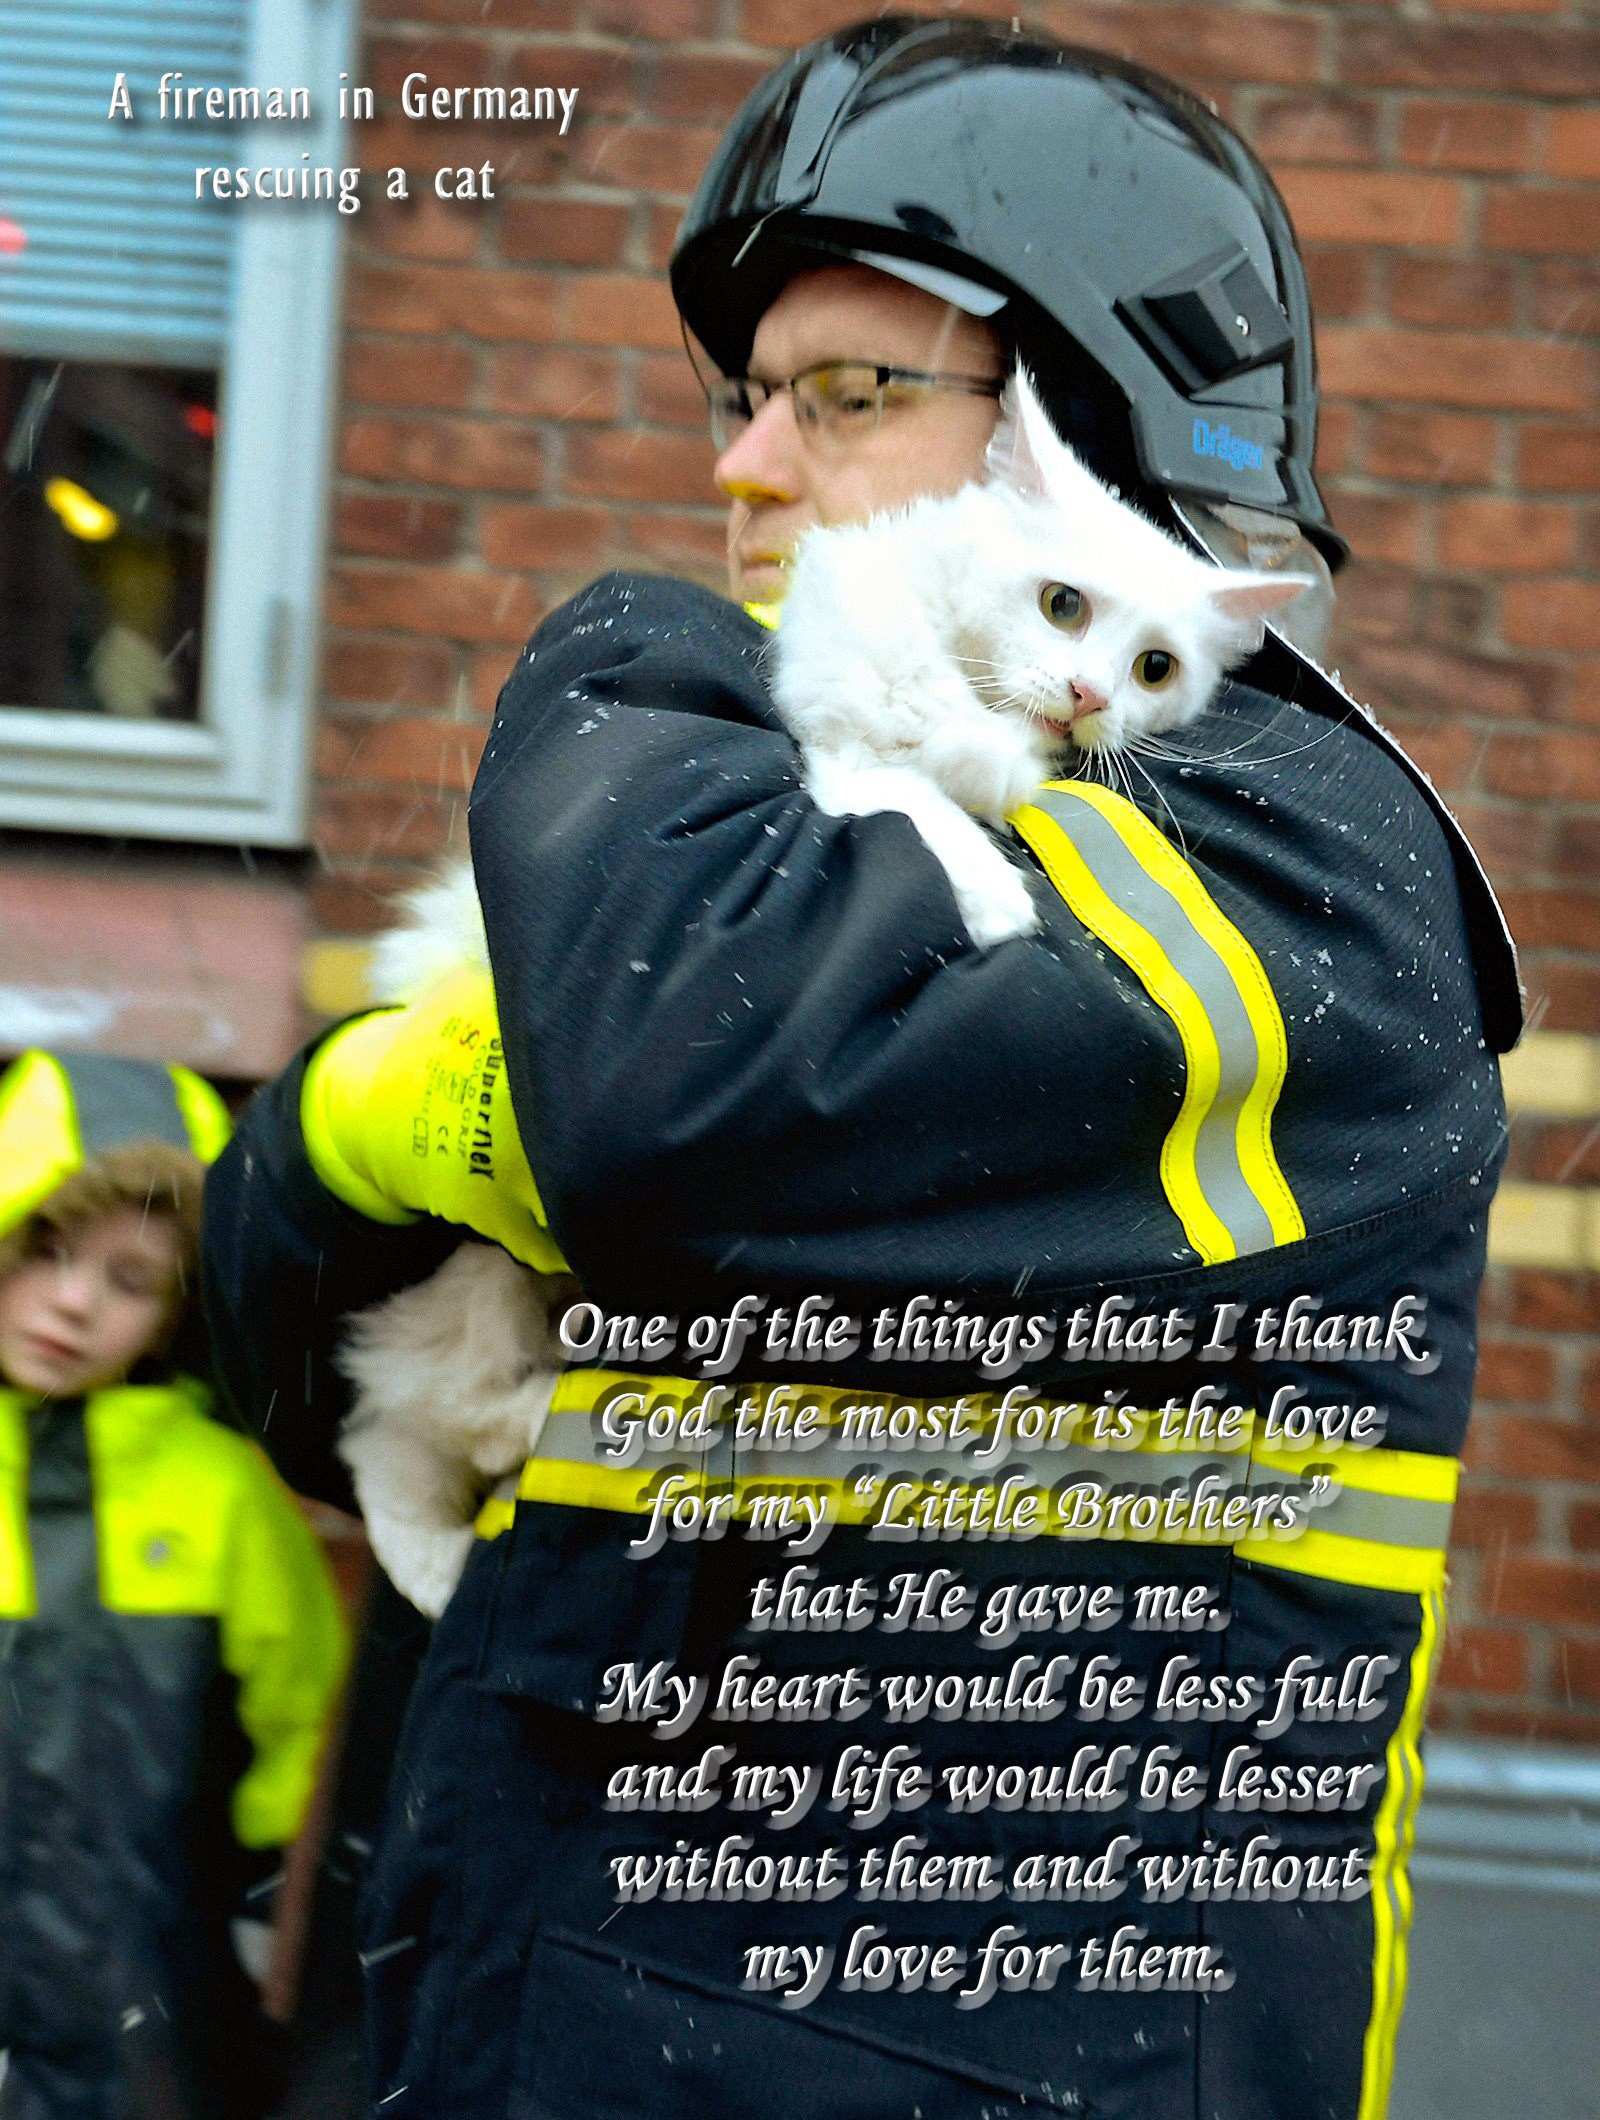 00 cat and fireman love for animals 290516